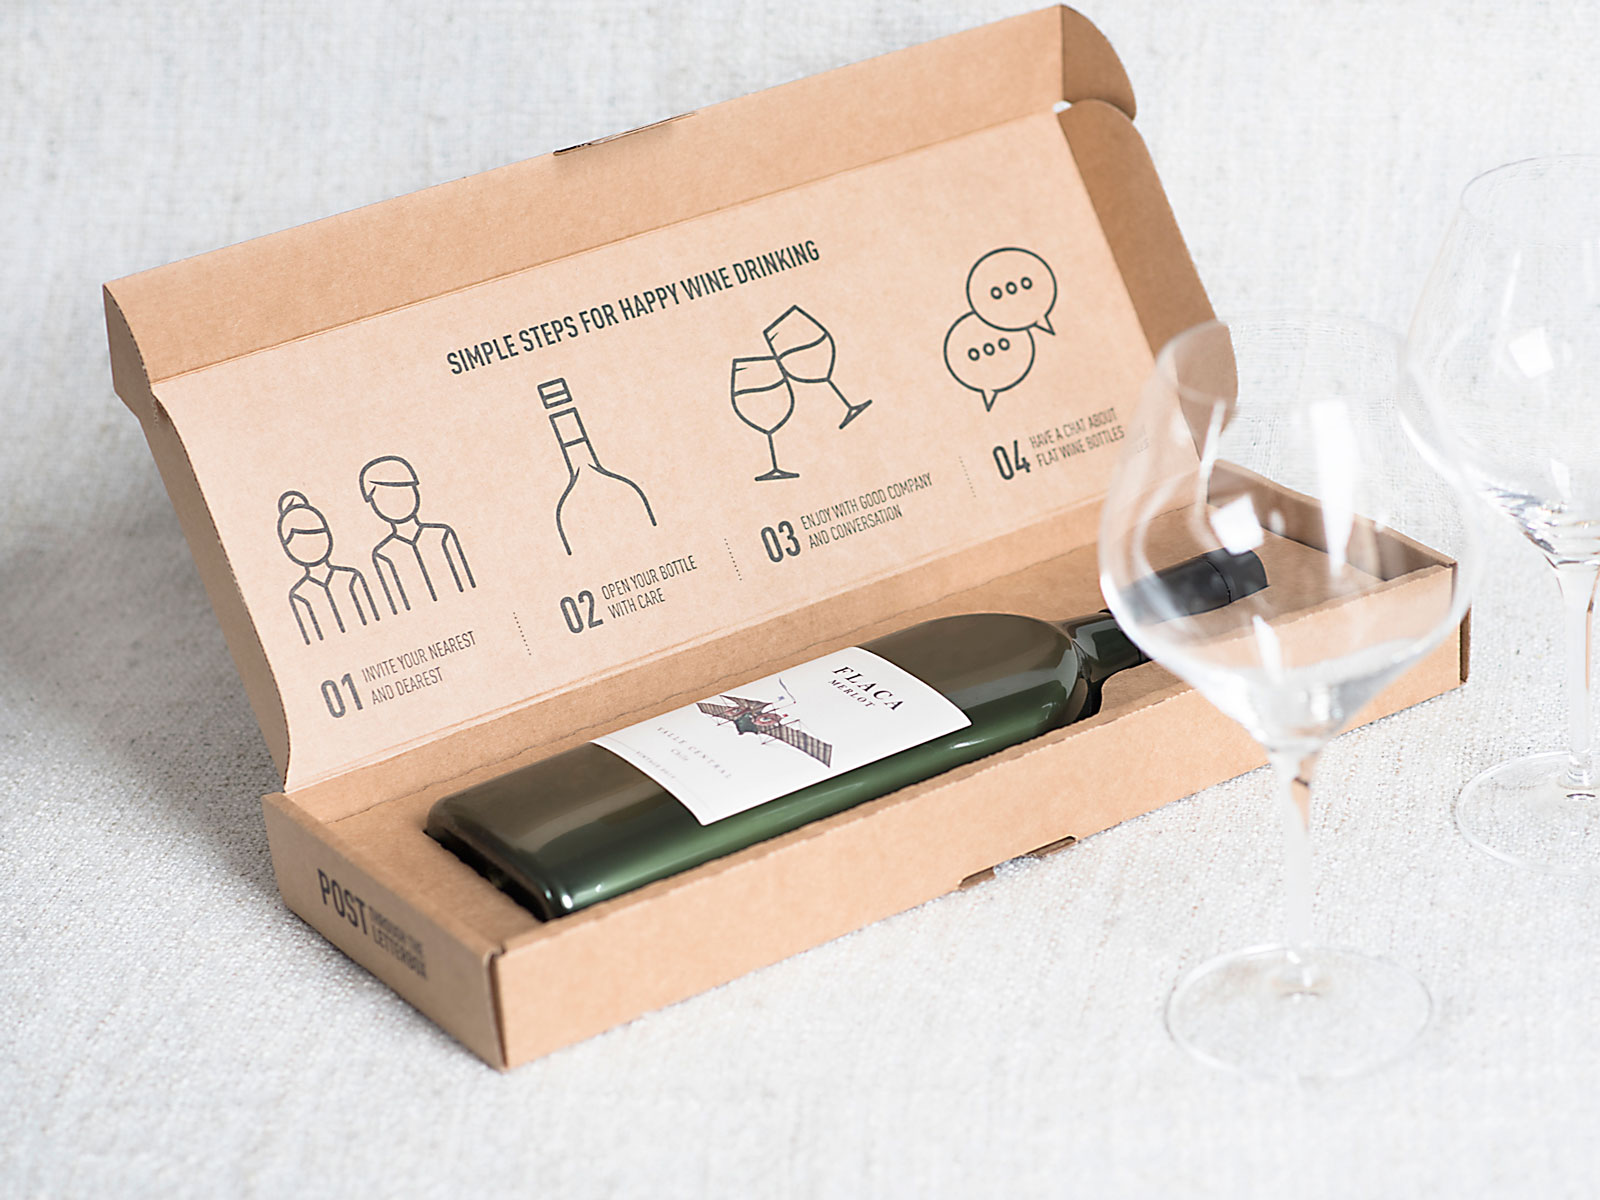 The World's First Flat Wine Bottle Won an Award for Packaging Innovation